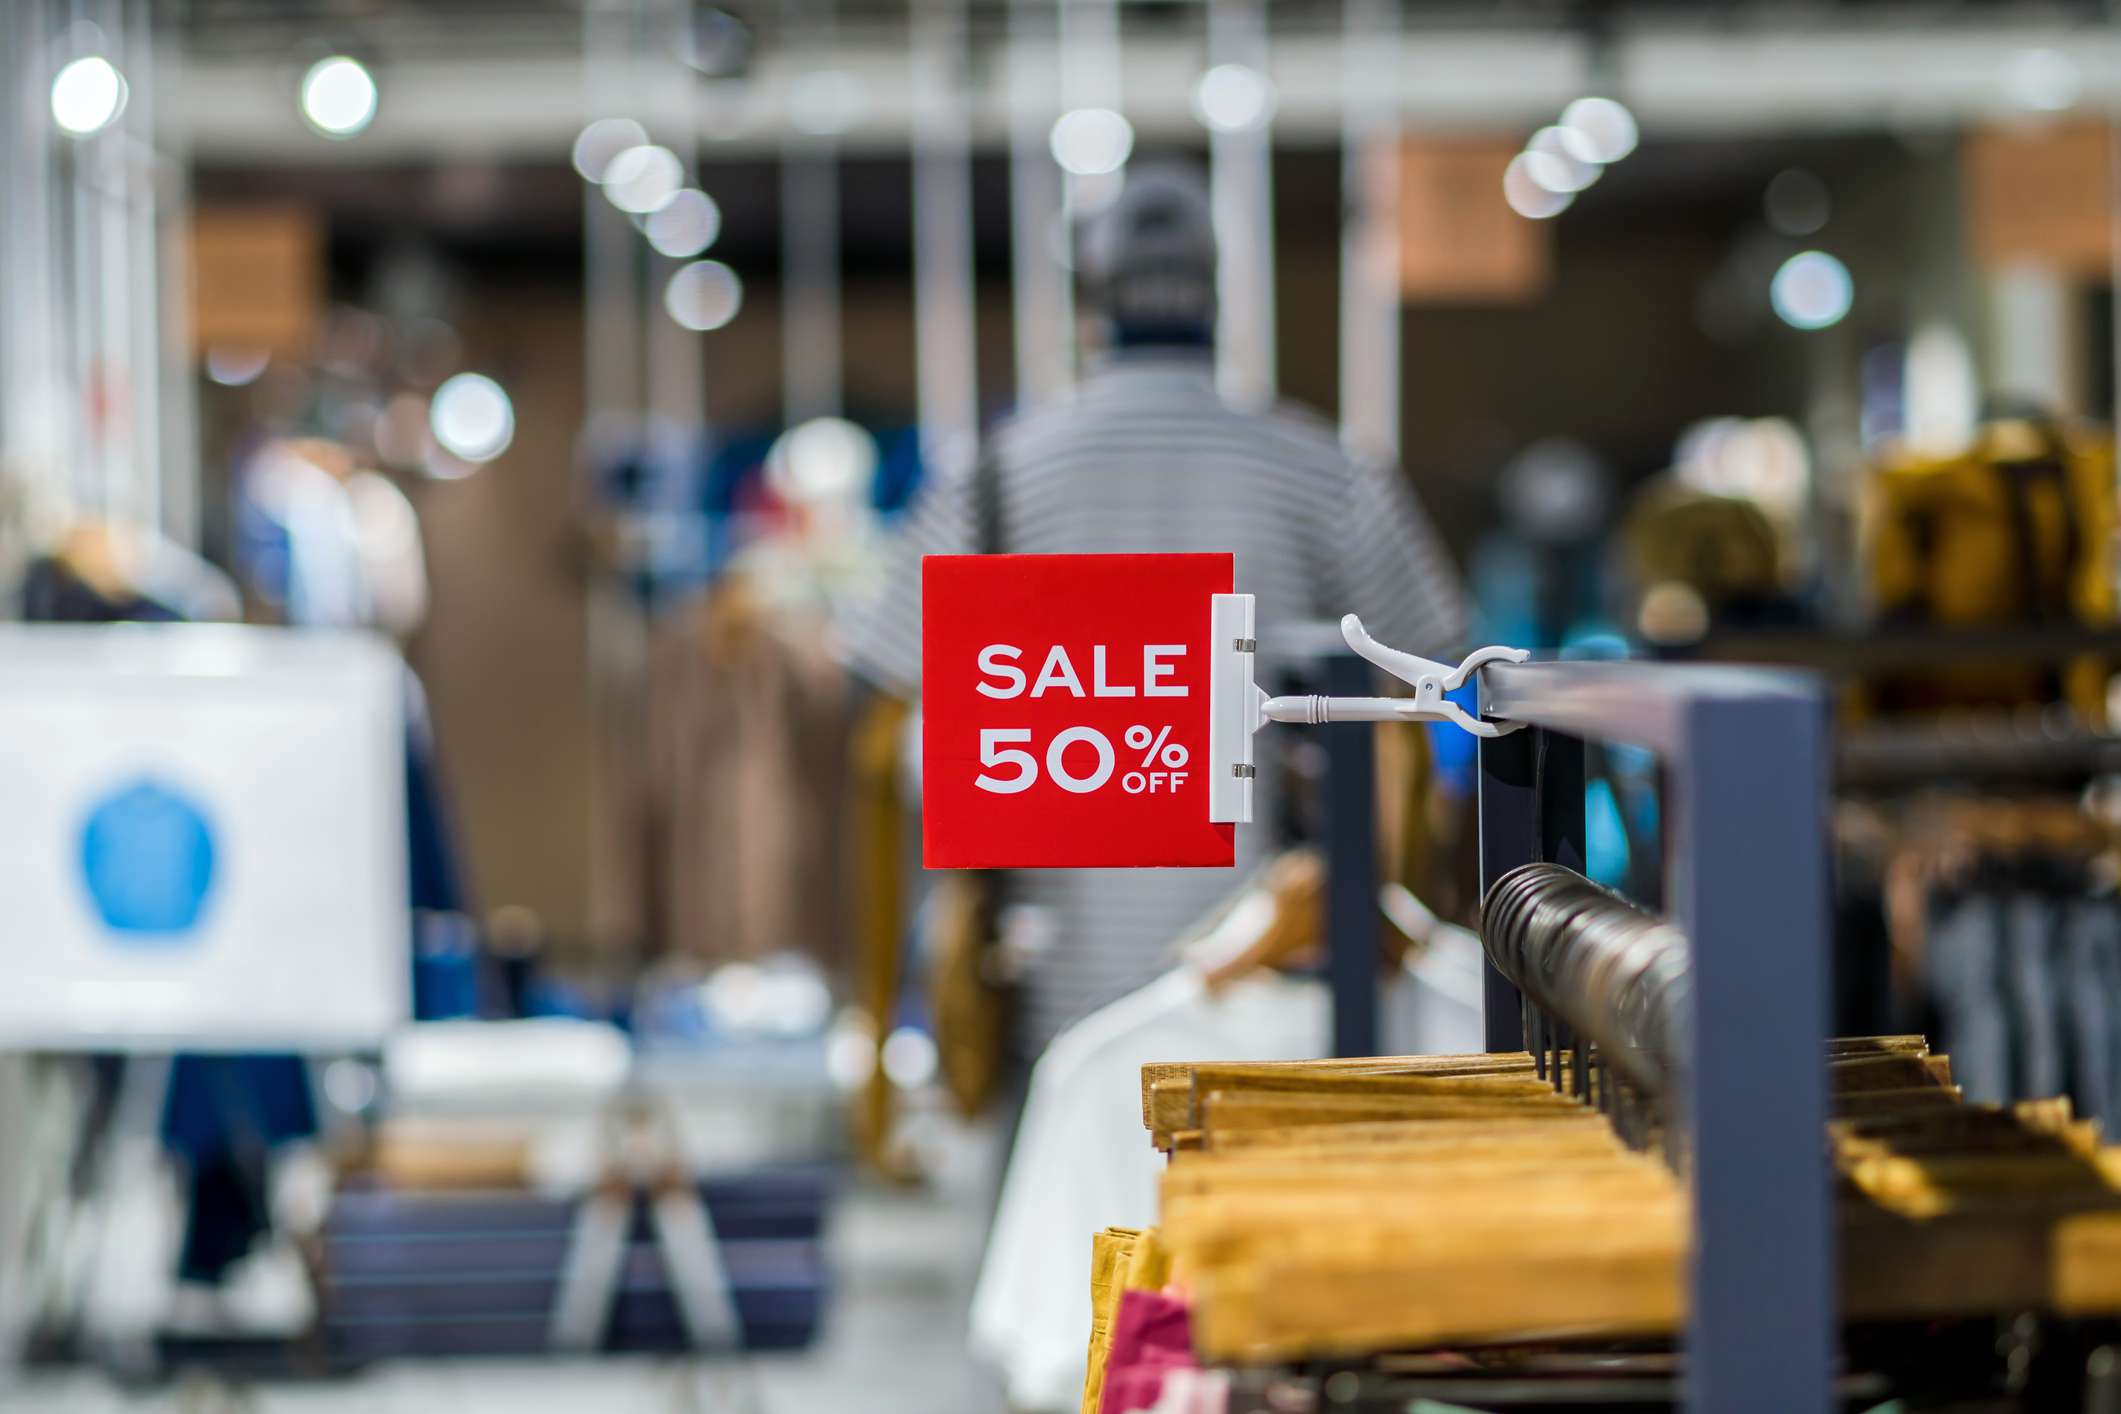 50% off sale sign in a clothing store